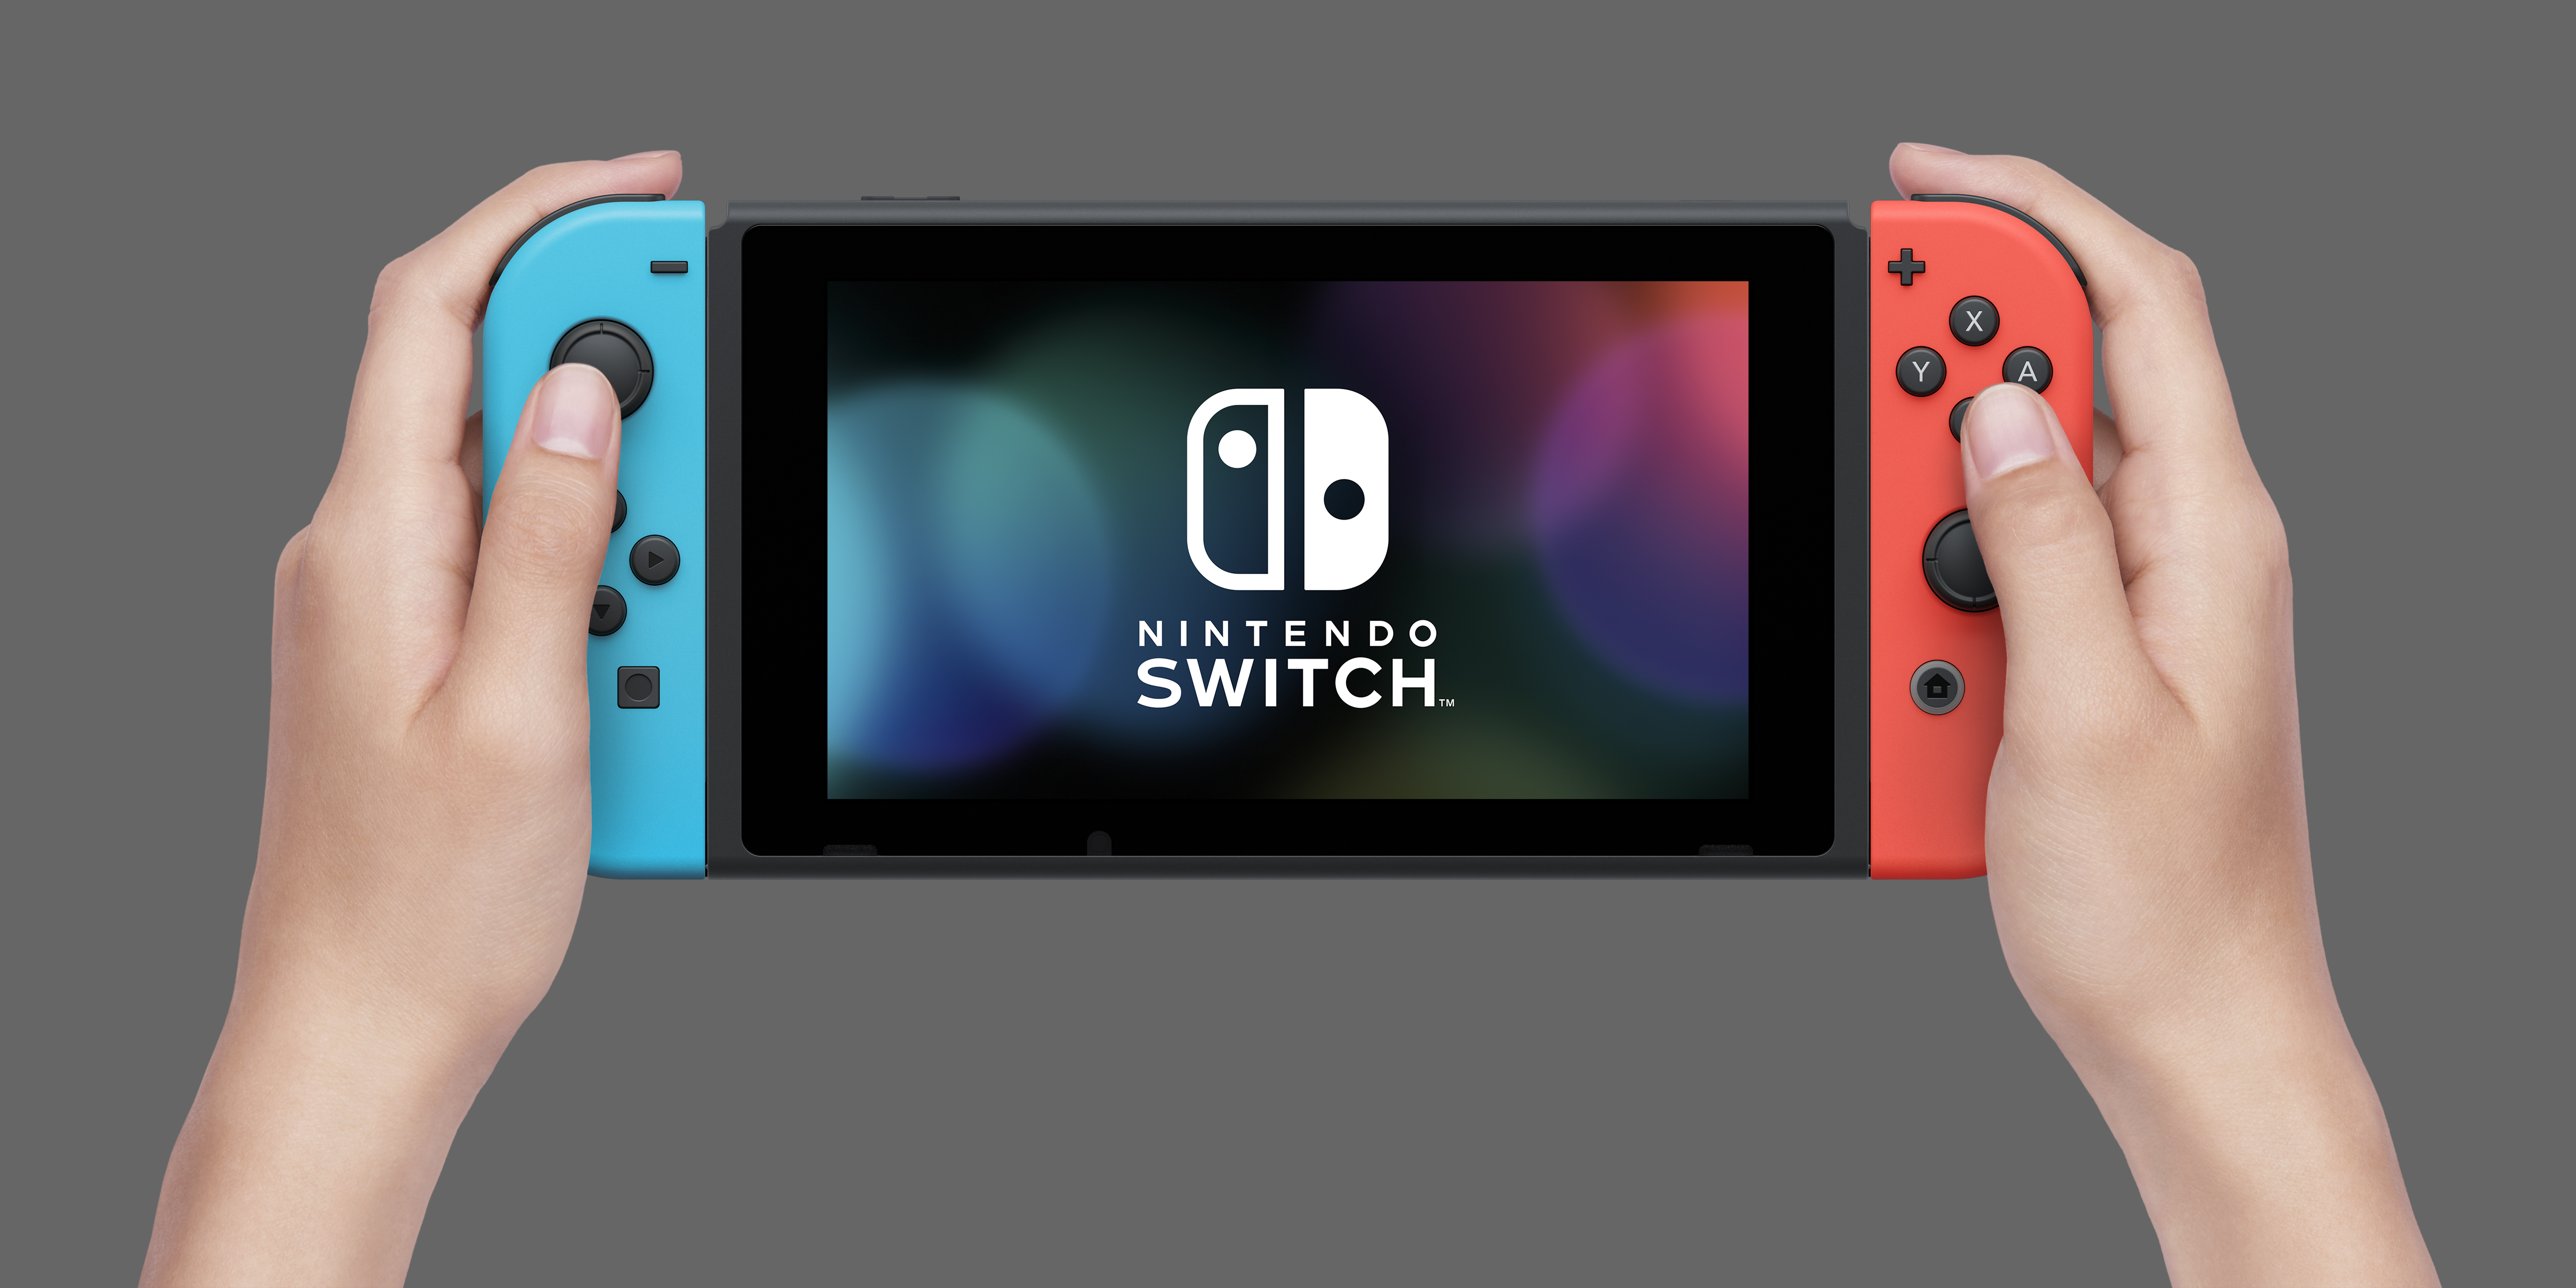 Gallery: The Temperature Of Nintendo Switch During Play Thanks To Thermal Imaging Infrared Camera Images